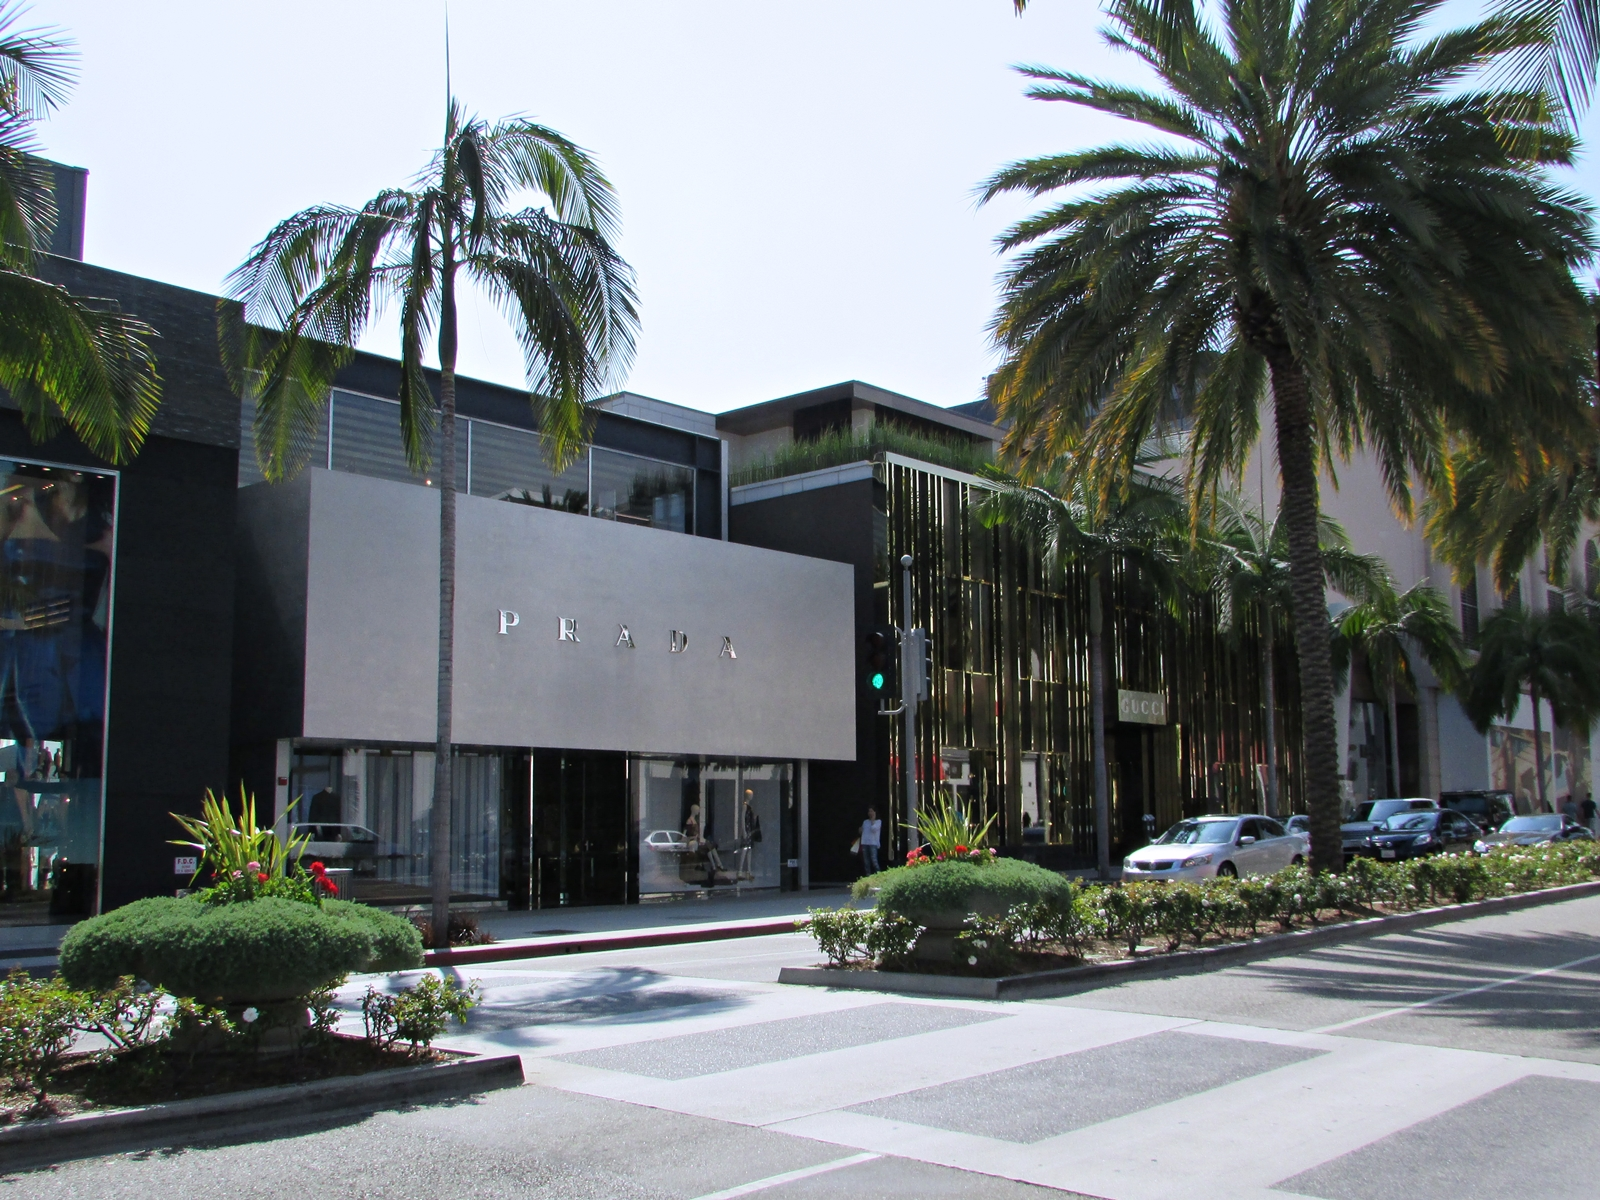 Rodeo Drive - Beverly Hills - USA Rundreise - Amerika Roadtrip - Fashionladyloves by Tamara Wagner - Trvelblog